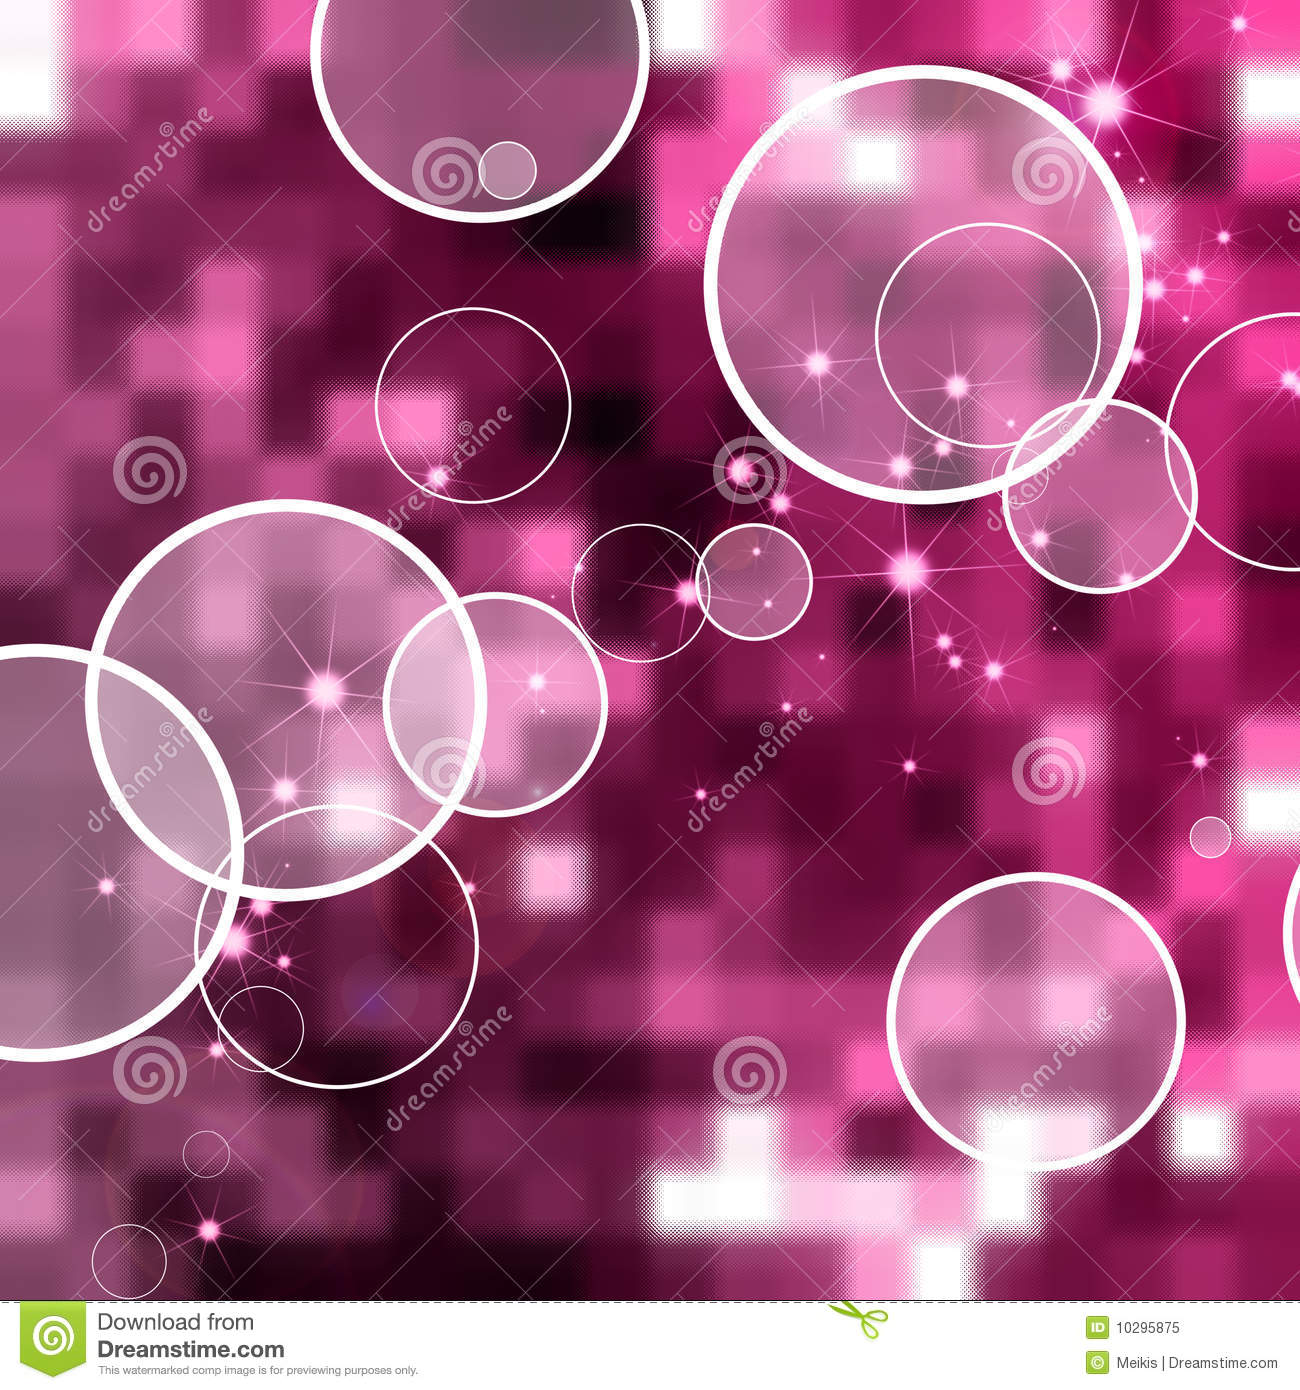 abstract circle pink background royalty free stock photo